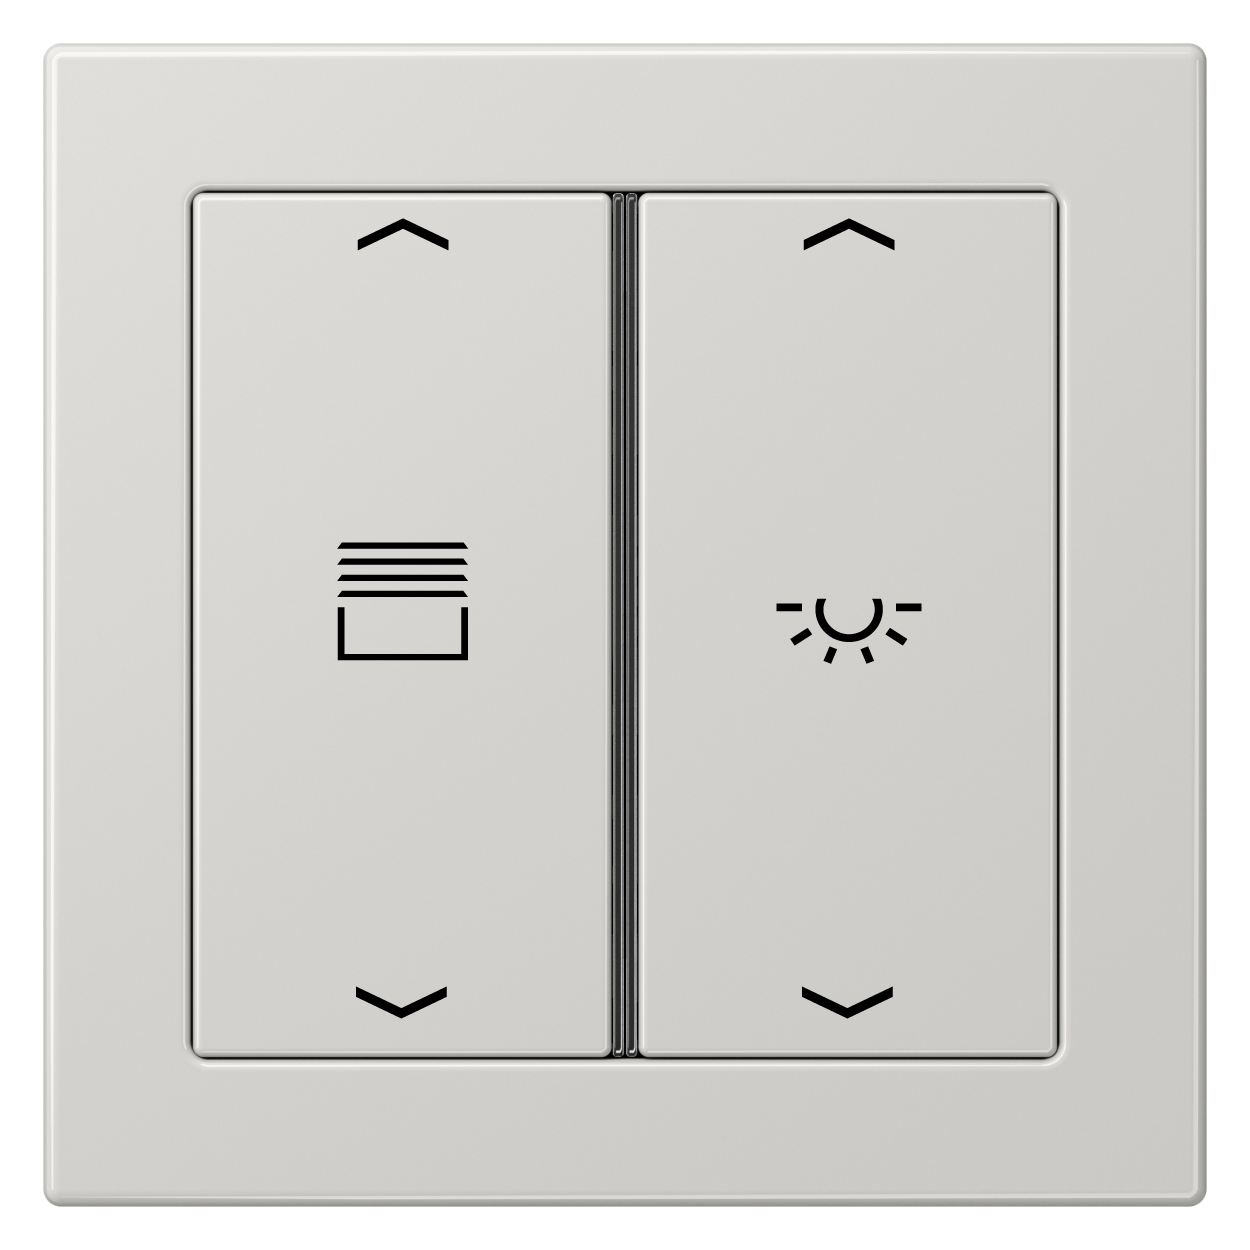 JUNG_Flat_Design_light-grey_2button_symbols